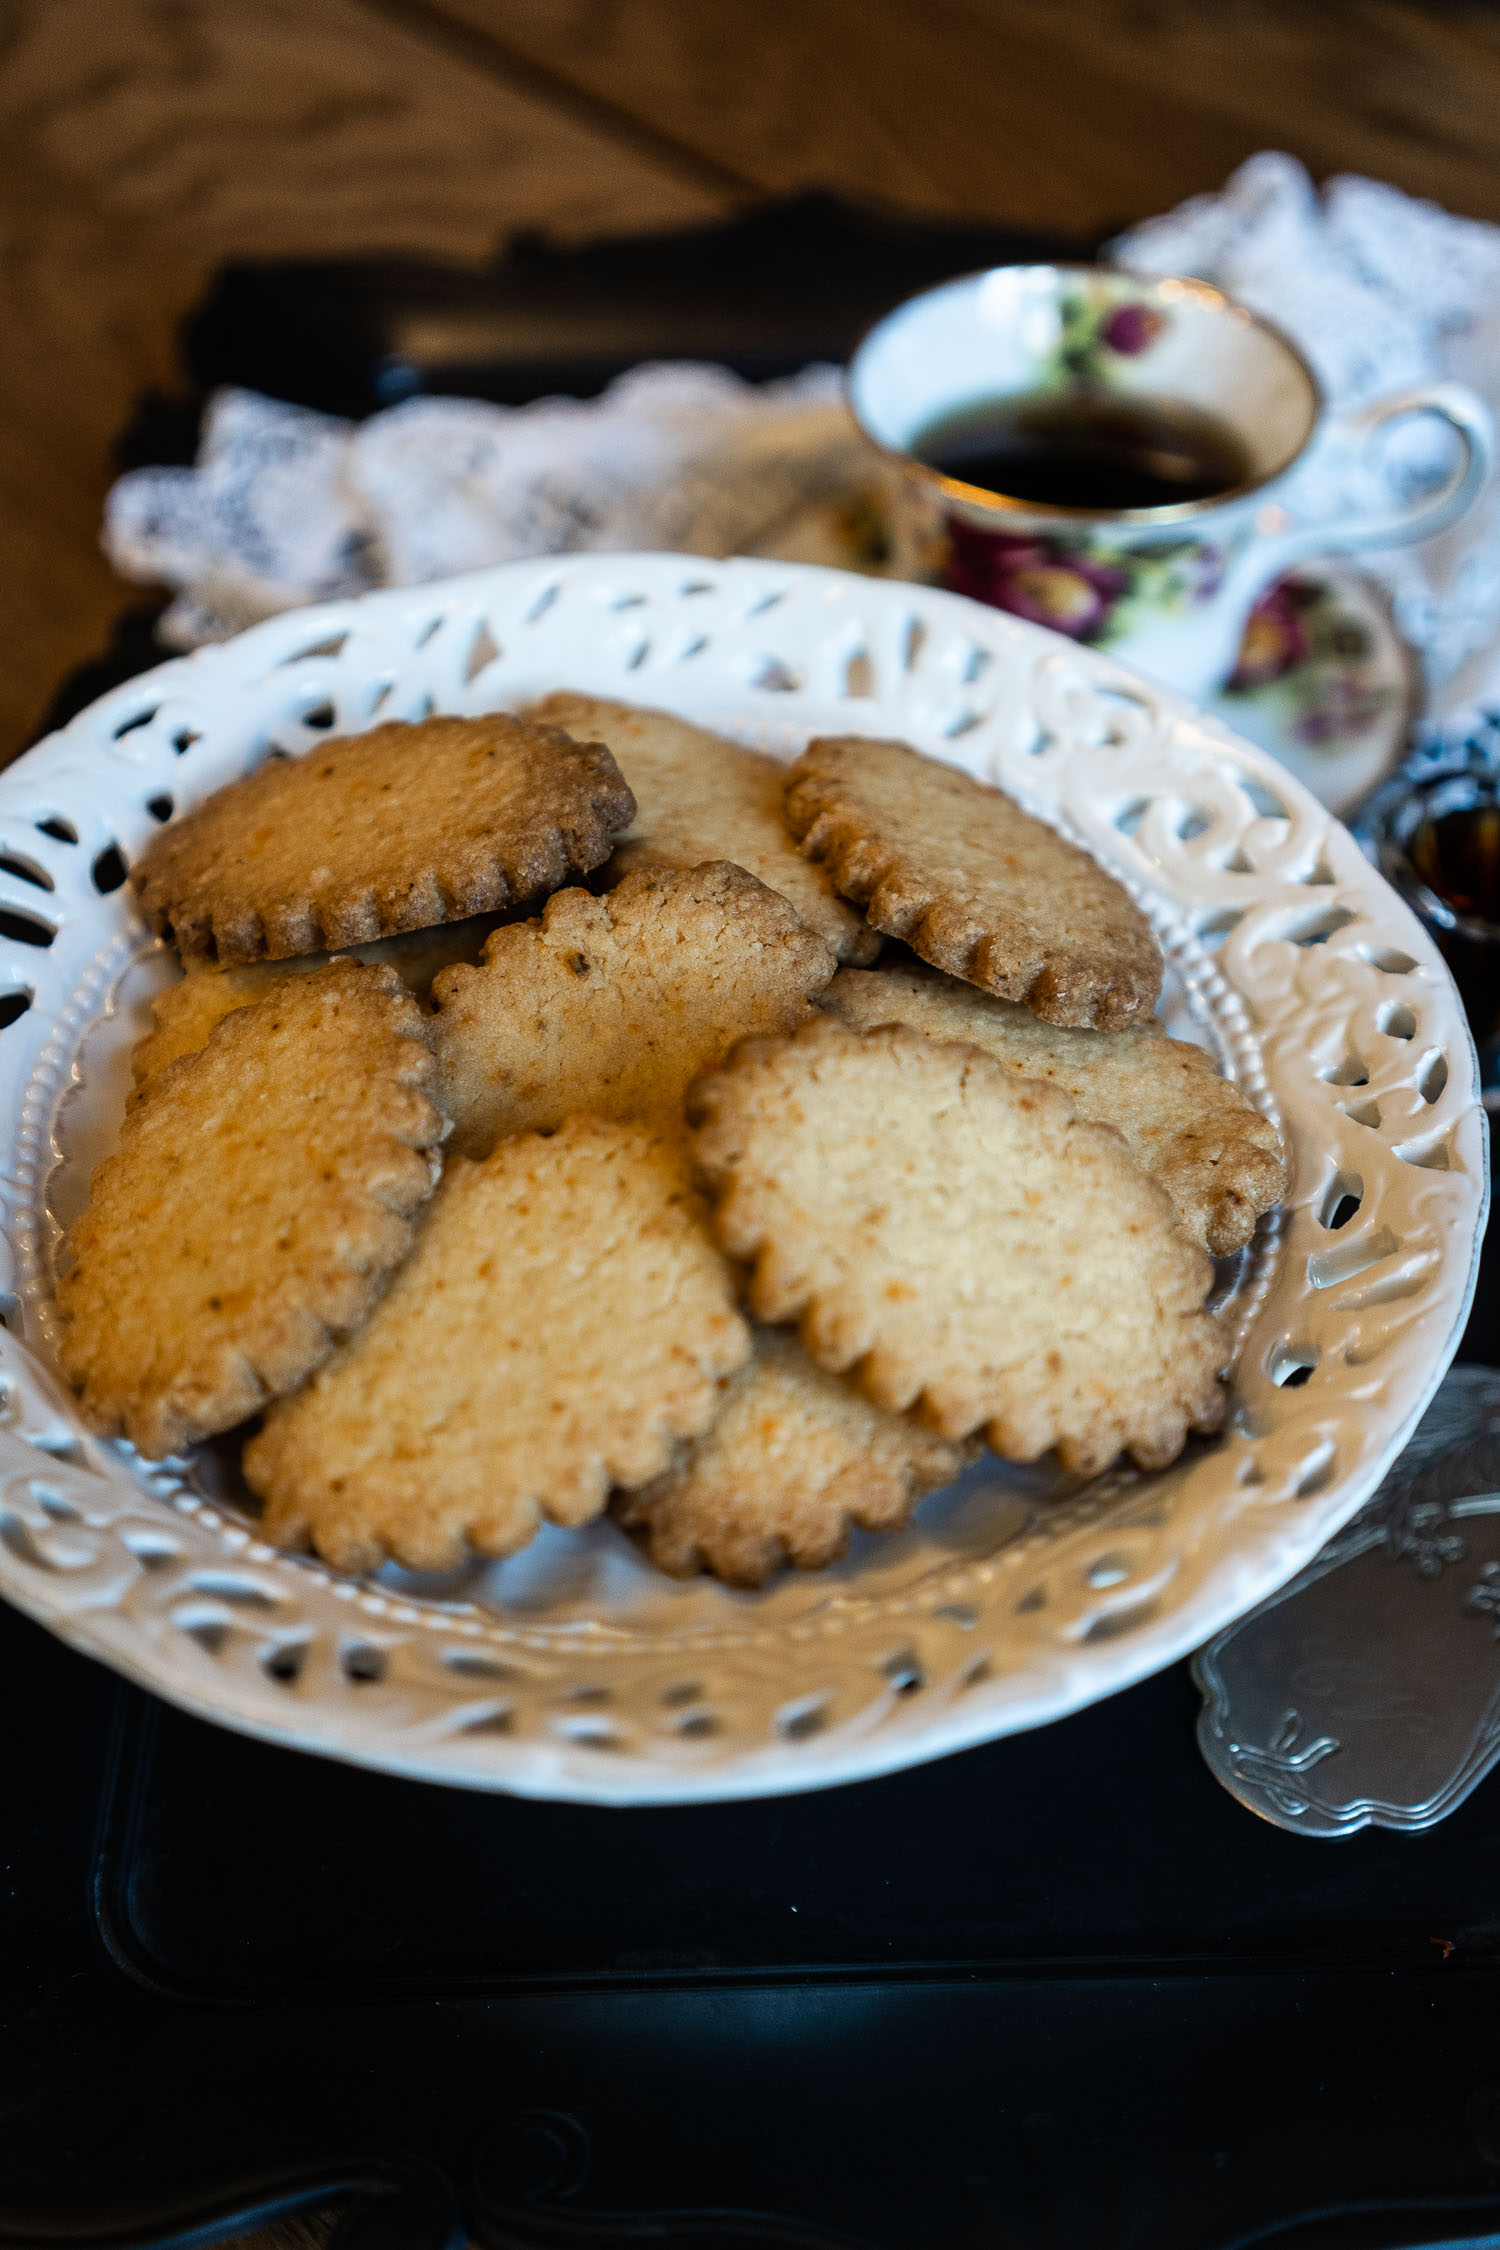 Ginger-and-Chilli-Biscuits-served-with-Masala-Chai-04047.jpg